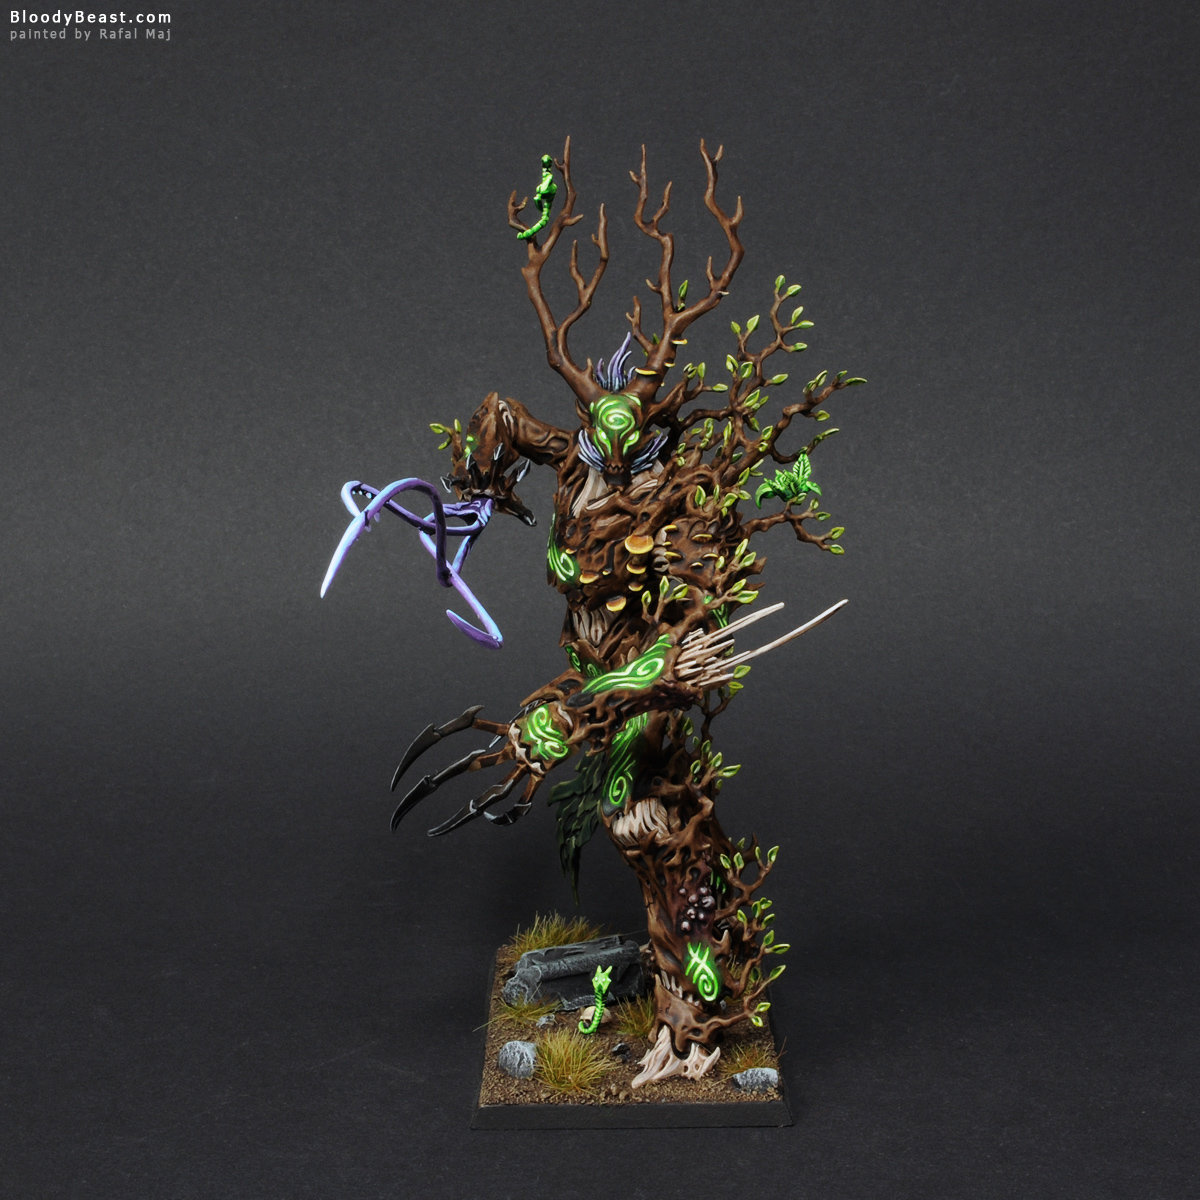 Wood Elves Treeman BloodyBeastcom